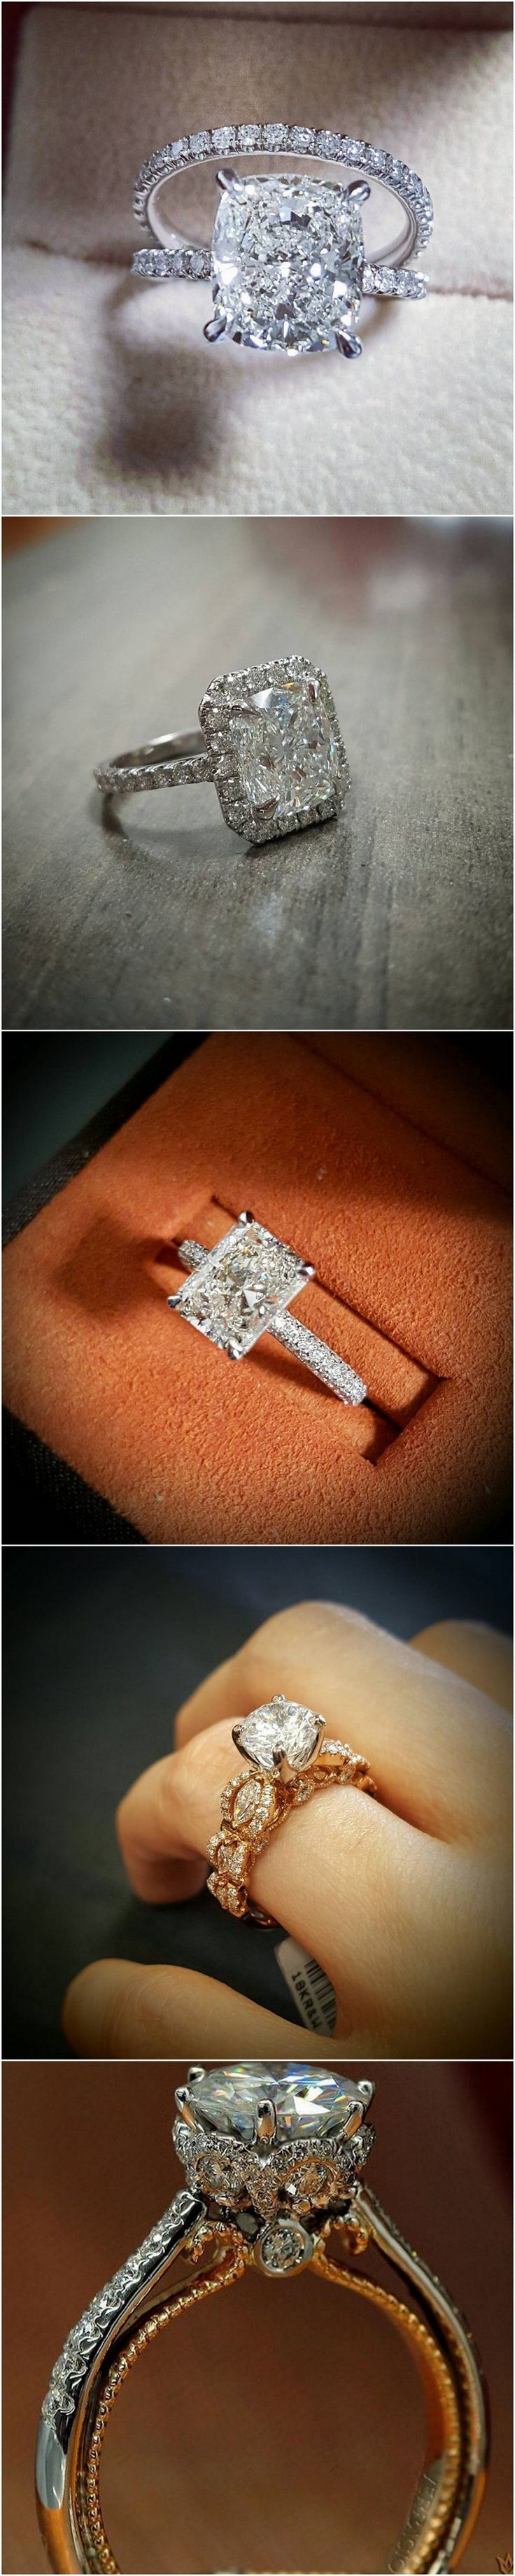 nyc white rings quad diamonds gold ring mdc engagementringsre tcw engagement cfm from princess in wedding diamond bridge